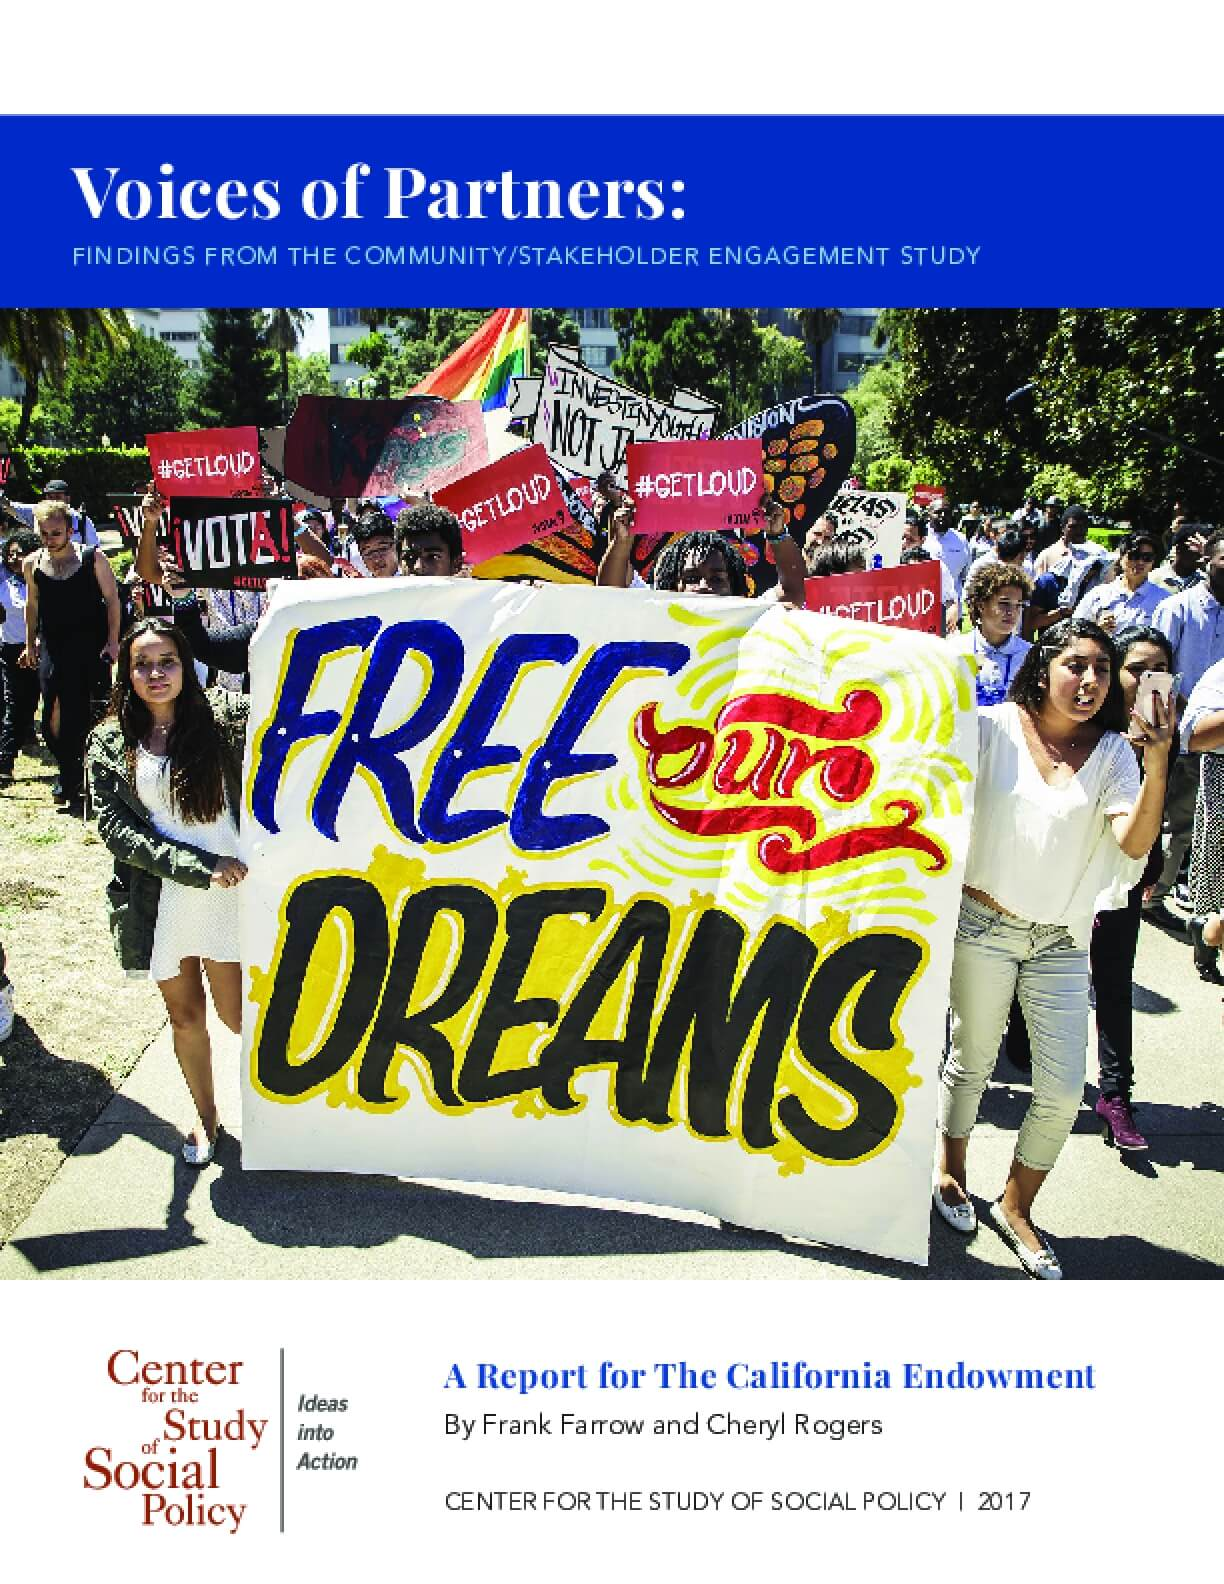 Voices of Partners: Findings from the Community/Stakeholder Engagement Study